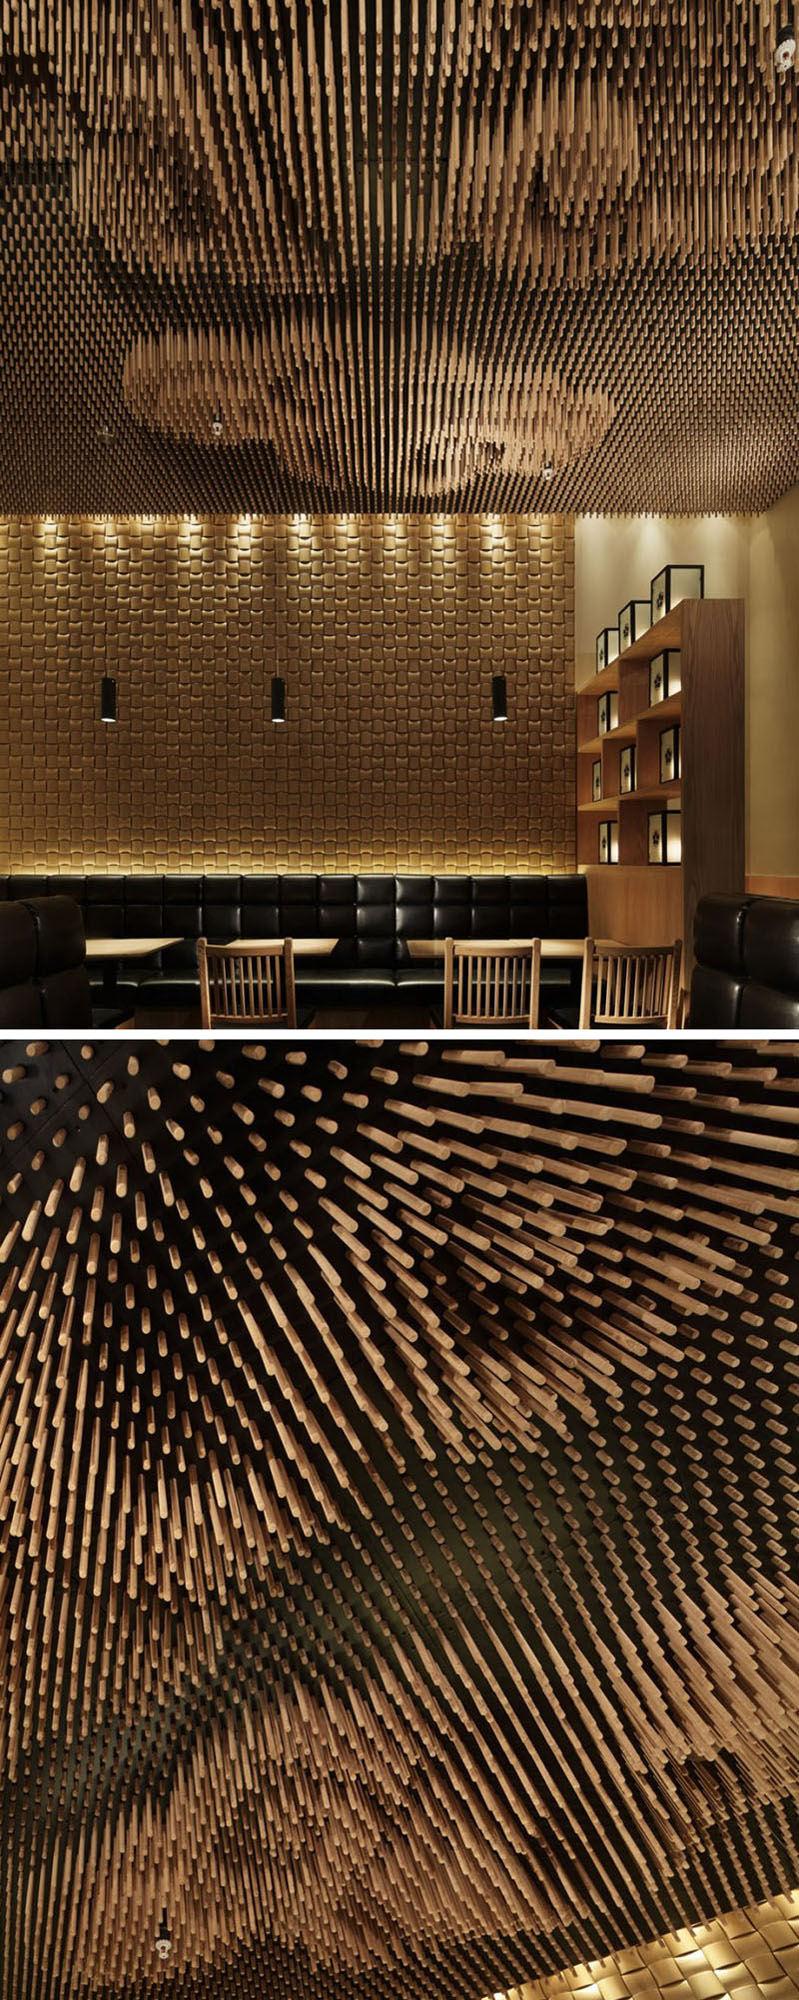 13 Amazing Examples Of Creative Sculptural Ceilings // The ceiling of this restaurant is made up of thousands of wooden sticks that were cut using specific calculations to increase the reality of the clouds.